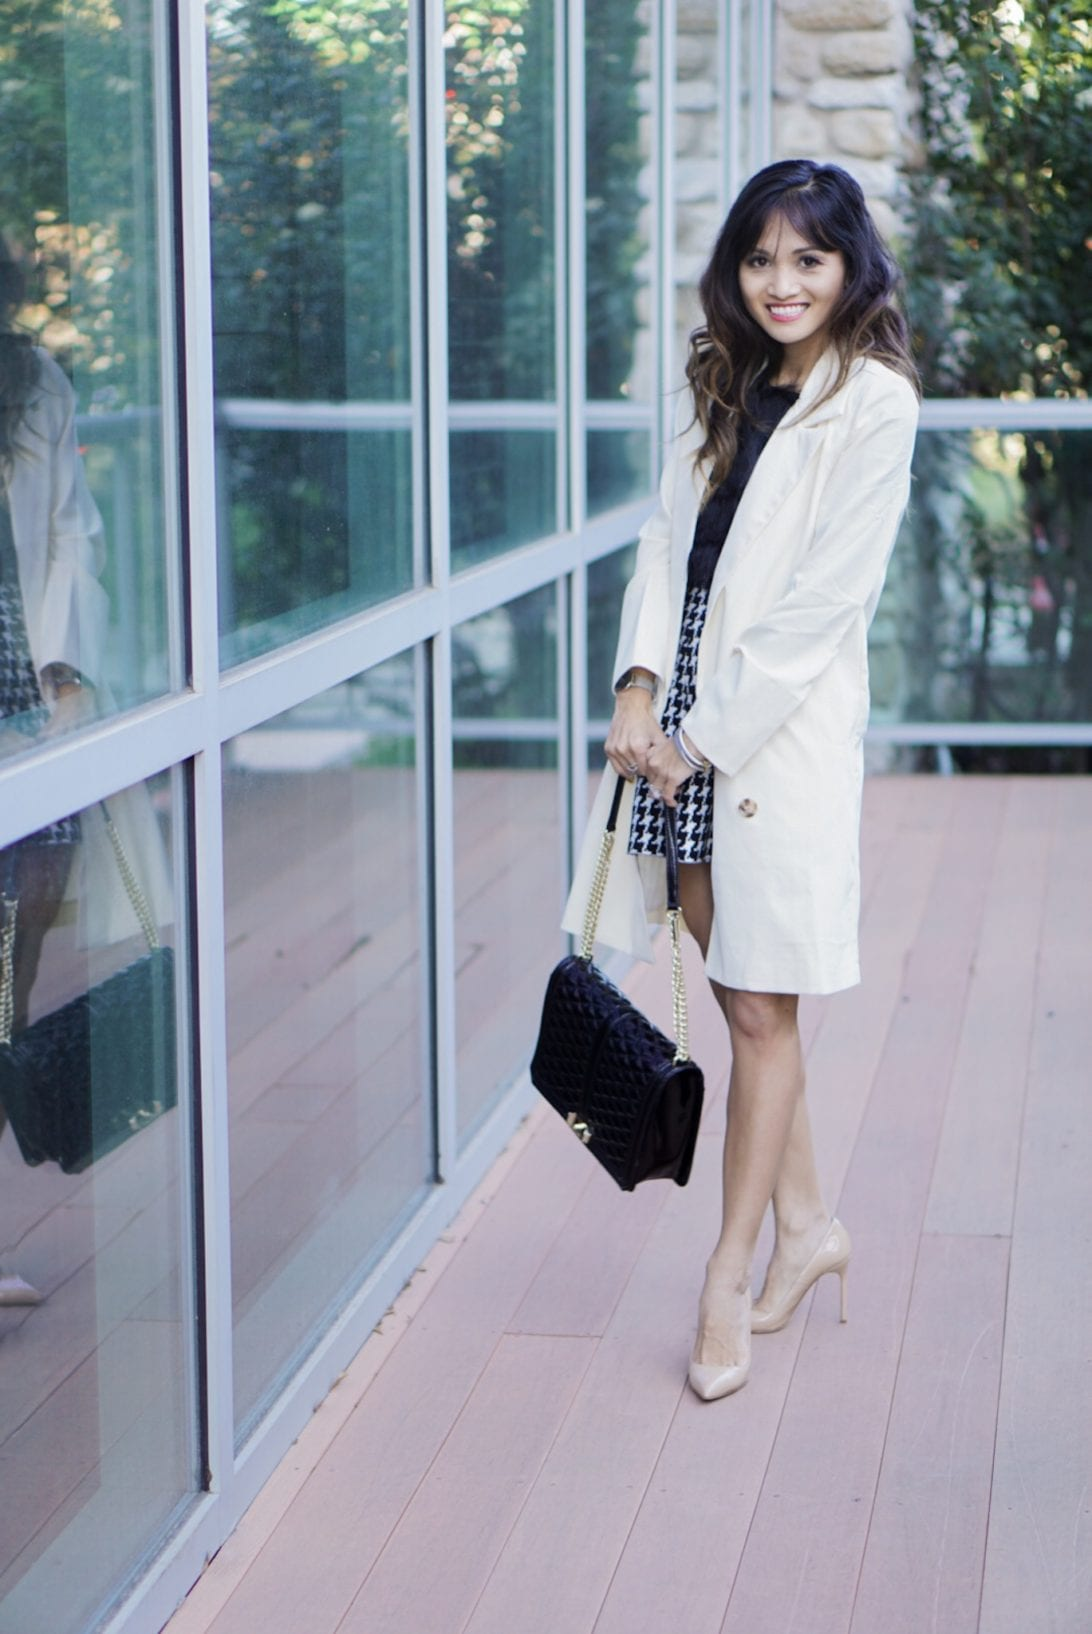 20 Easy Tips for the Best Instagram Post by Houston fashion blogger Dawn P. Darnell - light weight blazer, nude heels, rebecca minkoff bag, chic wish, work wear